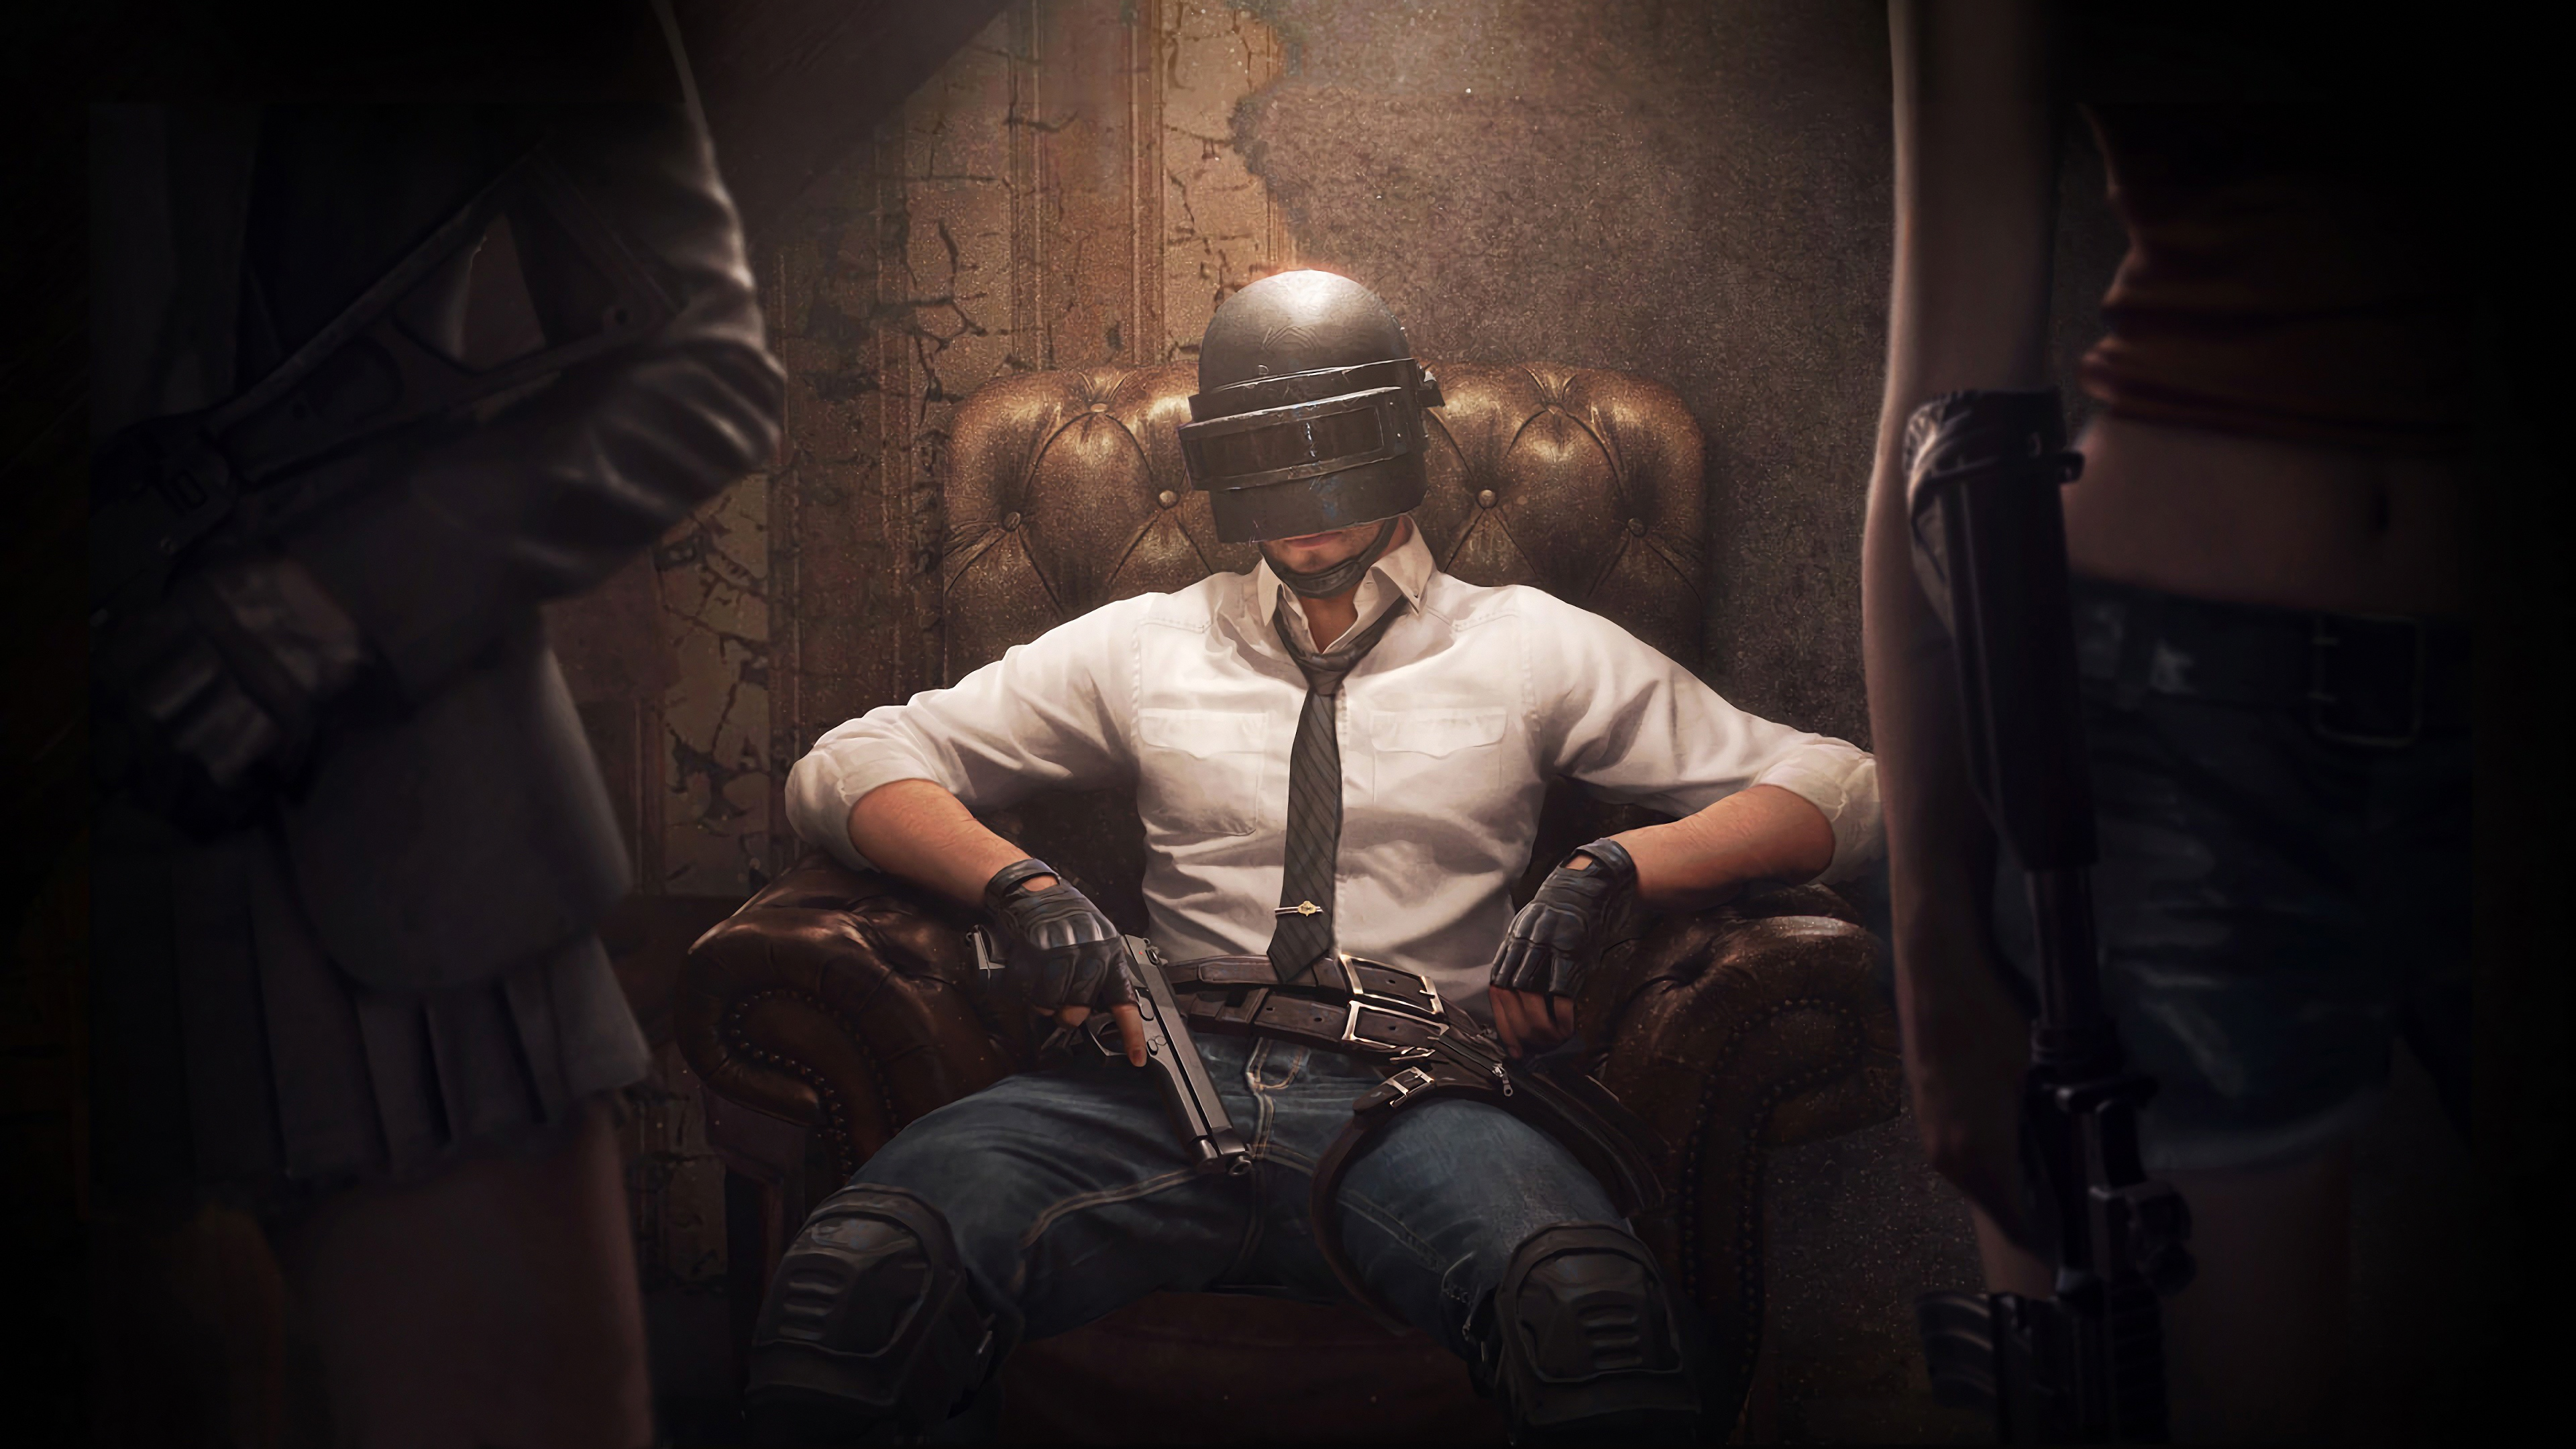 Pubg Wallpaper Themes: Pubg Android Game 4k, HD Games, 4k Wallpapers, Images